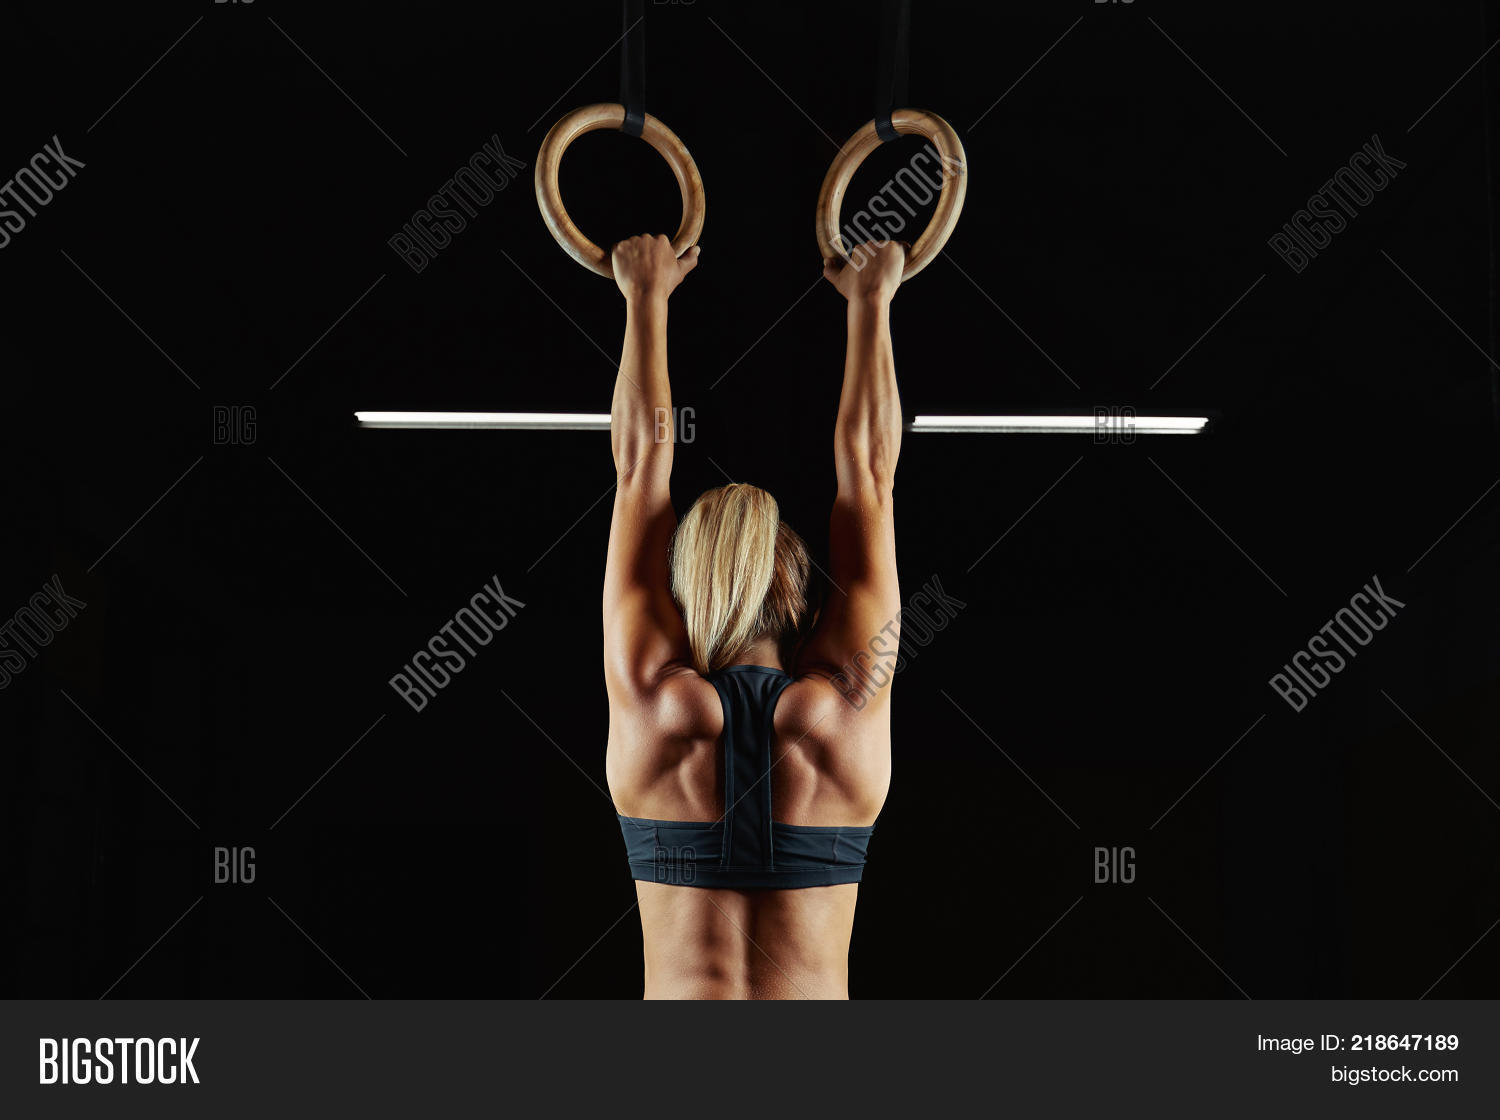 Full length rearview shot of a female athlete performing pull-ups on gymnastic rings. Fitness woman with strong beautiful body exercising on gym rings health power endurance competitive